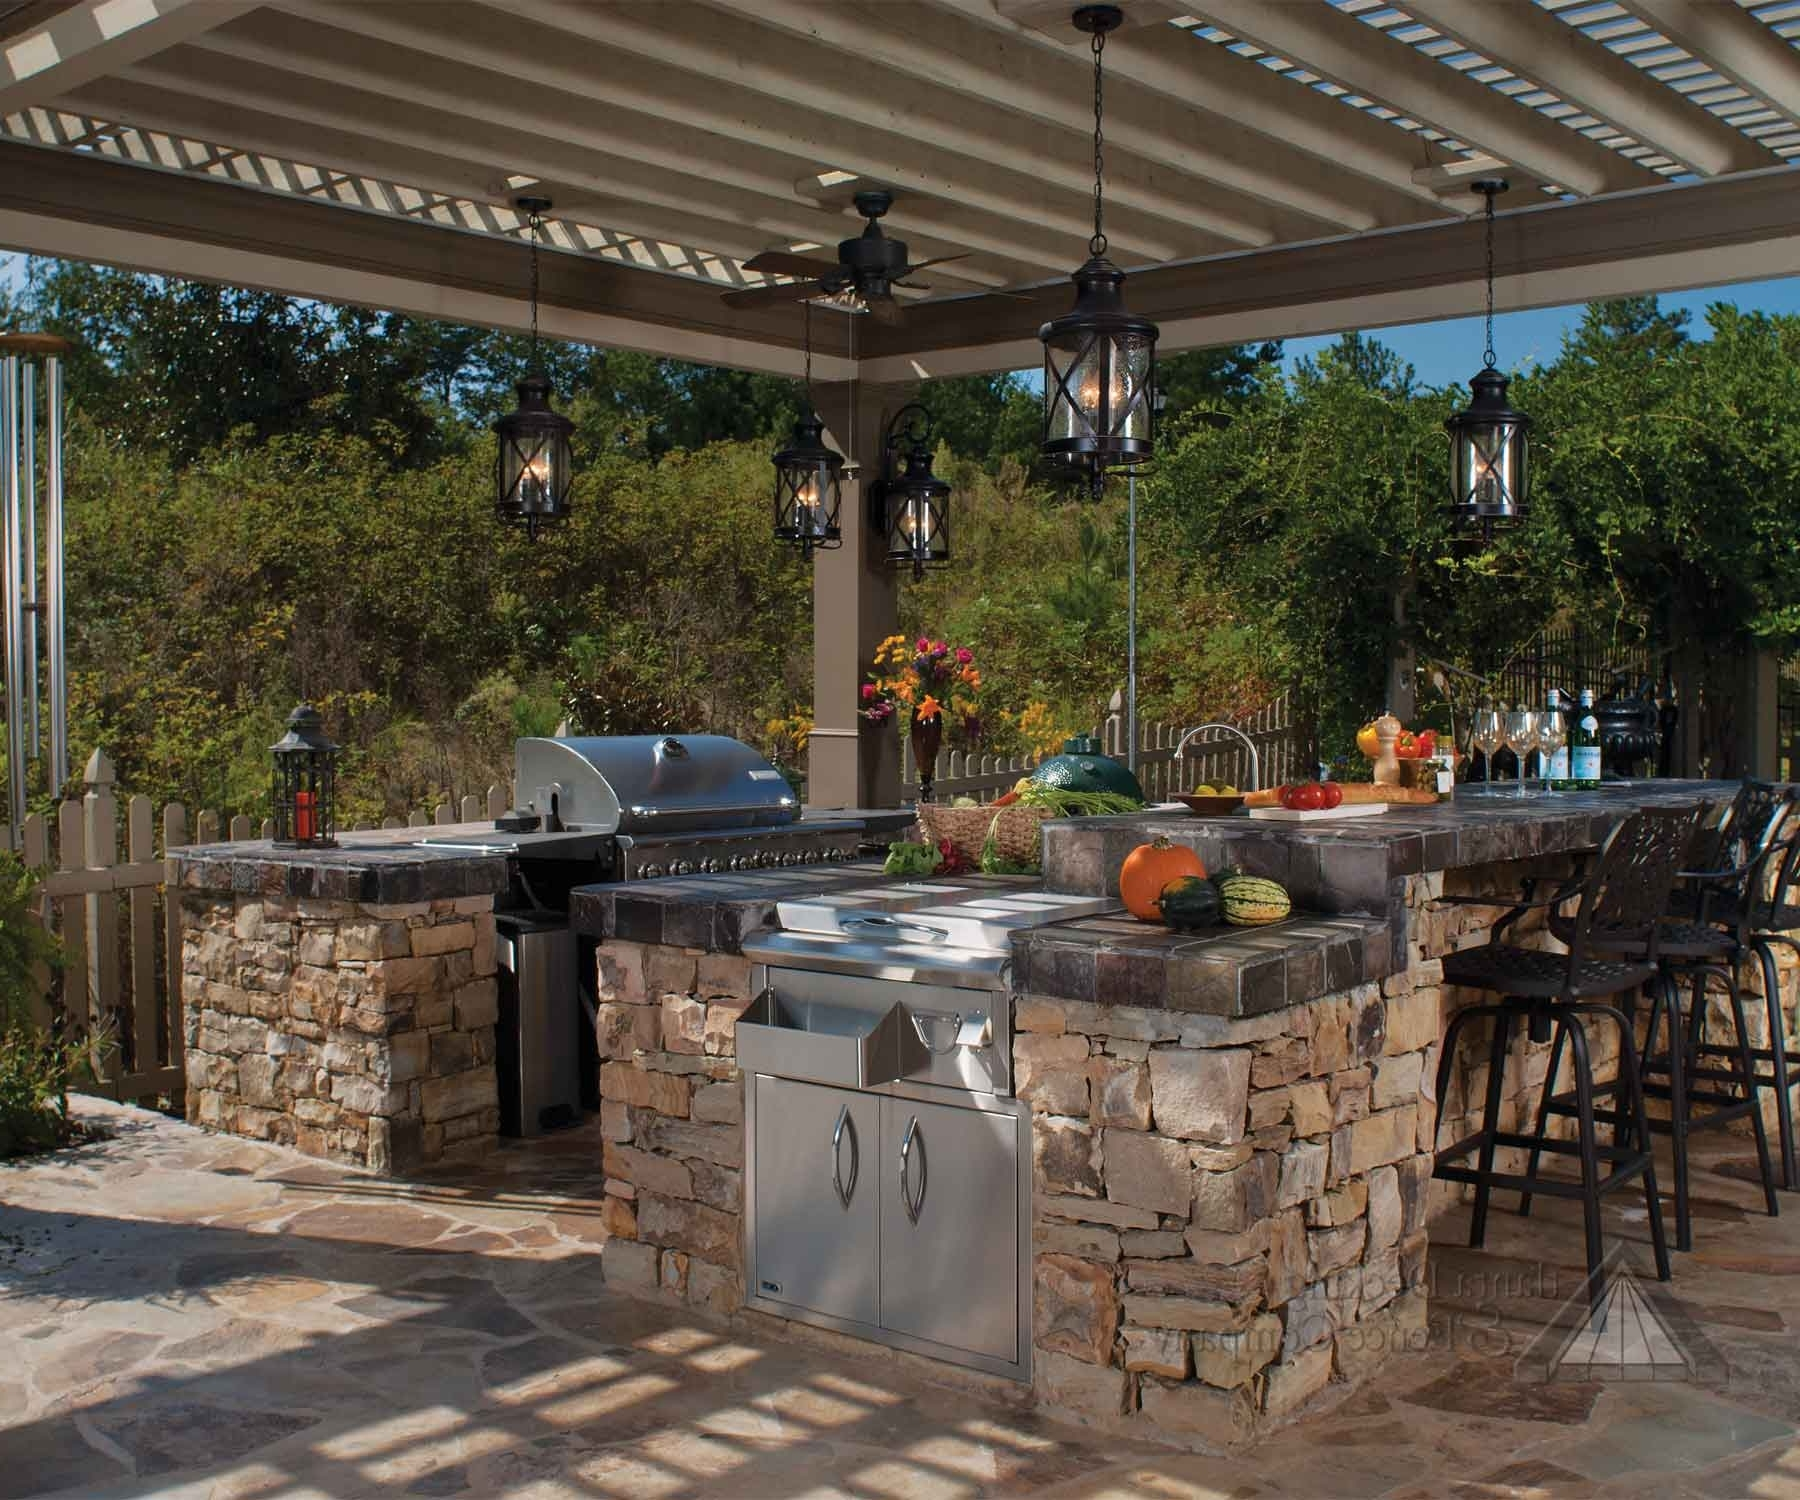 Trendy Outdoor Hanging Lights For Pergola With Lantern Shaped Hanging Outdoor Pendant Lights In An Outdoor Kitchen (View 16 of 20)